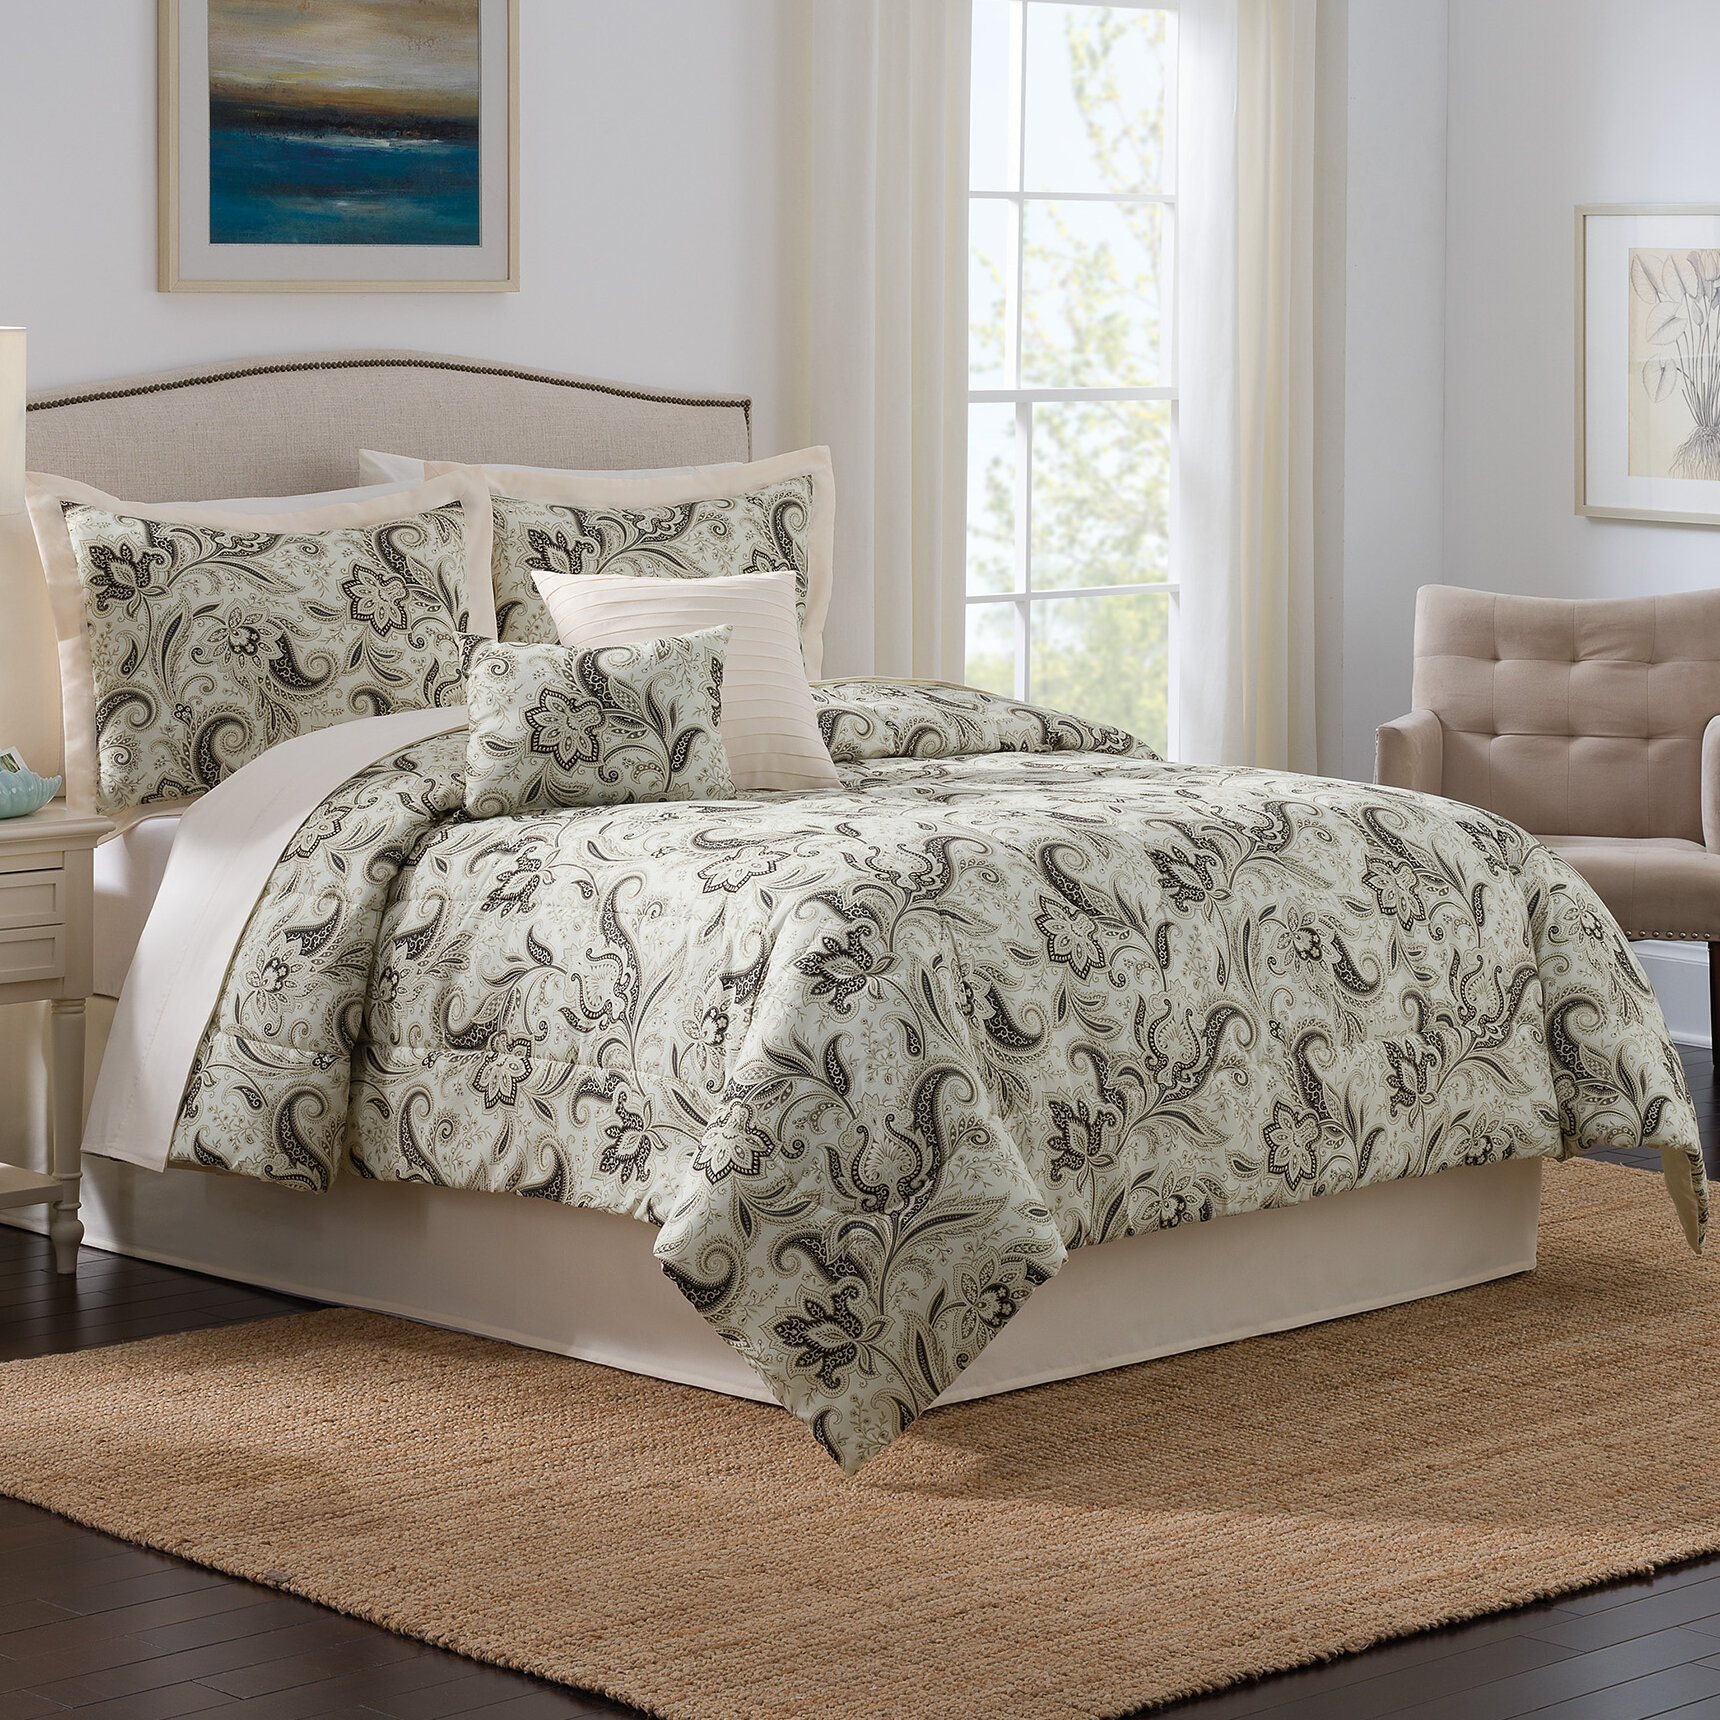 Traditions By Waverly Rustic Retreat 6 Piece Comforter Set